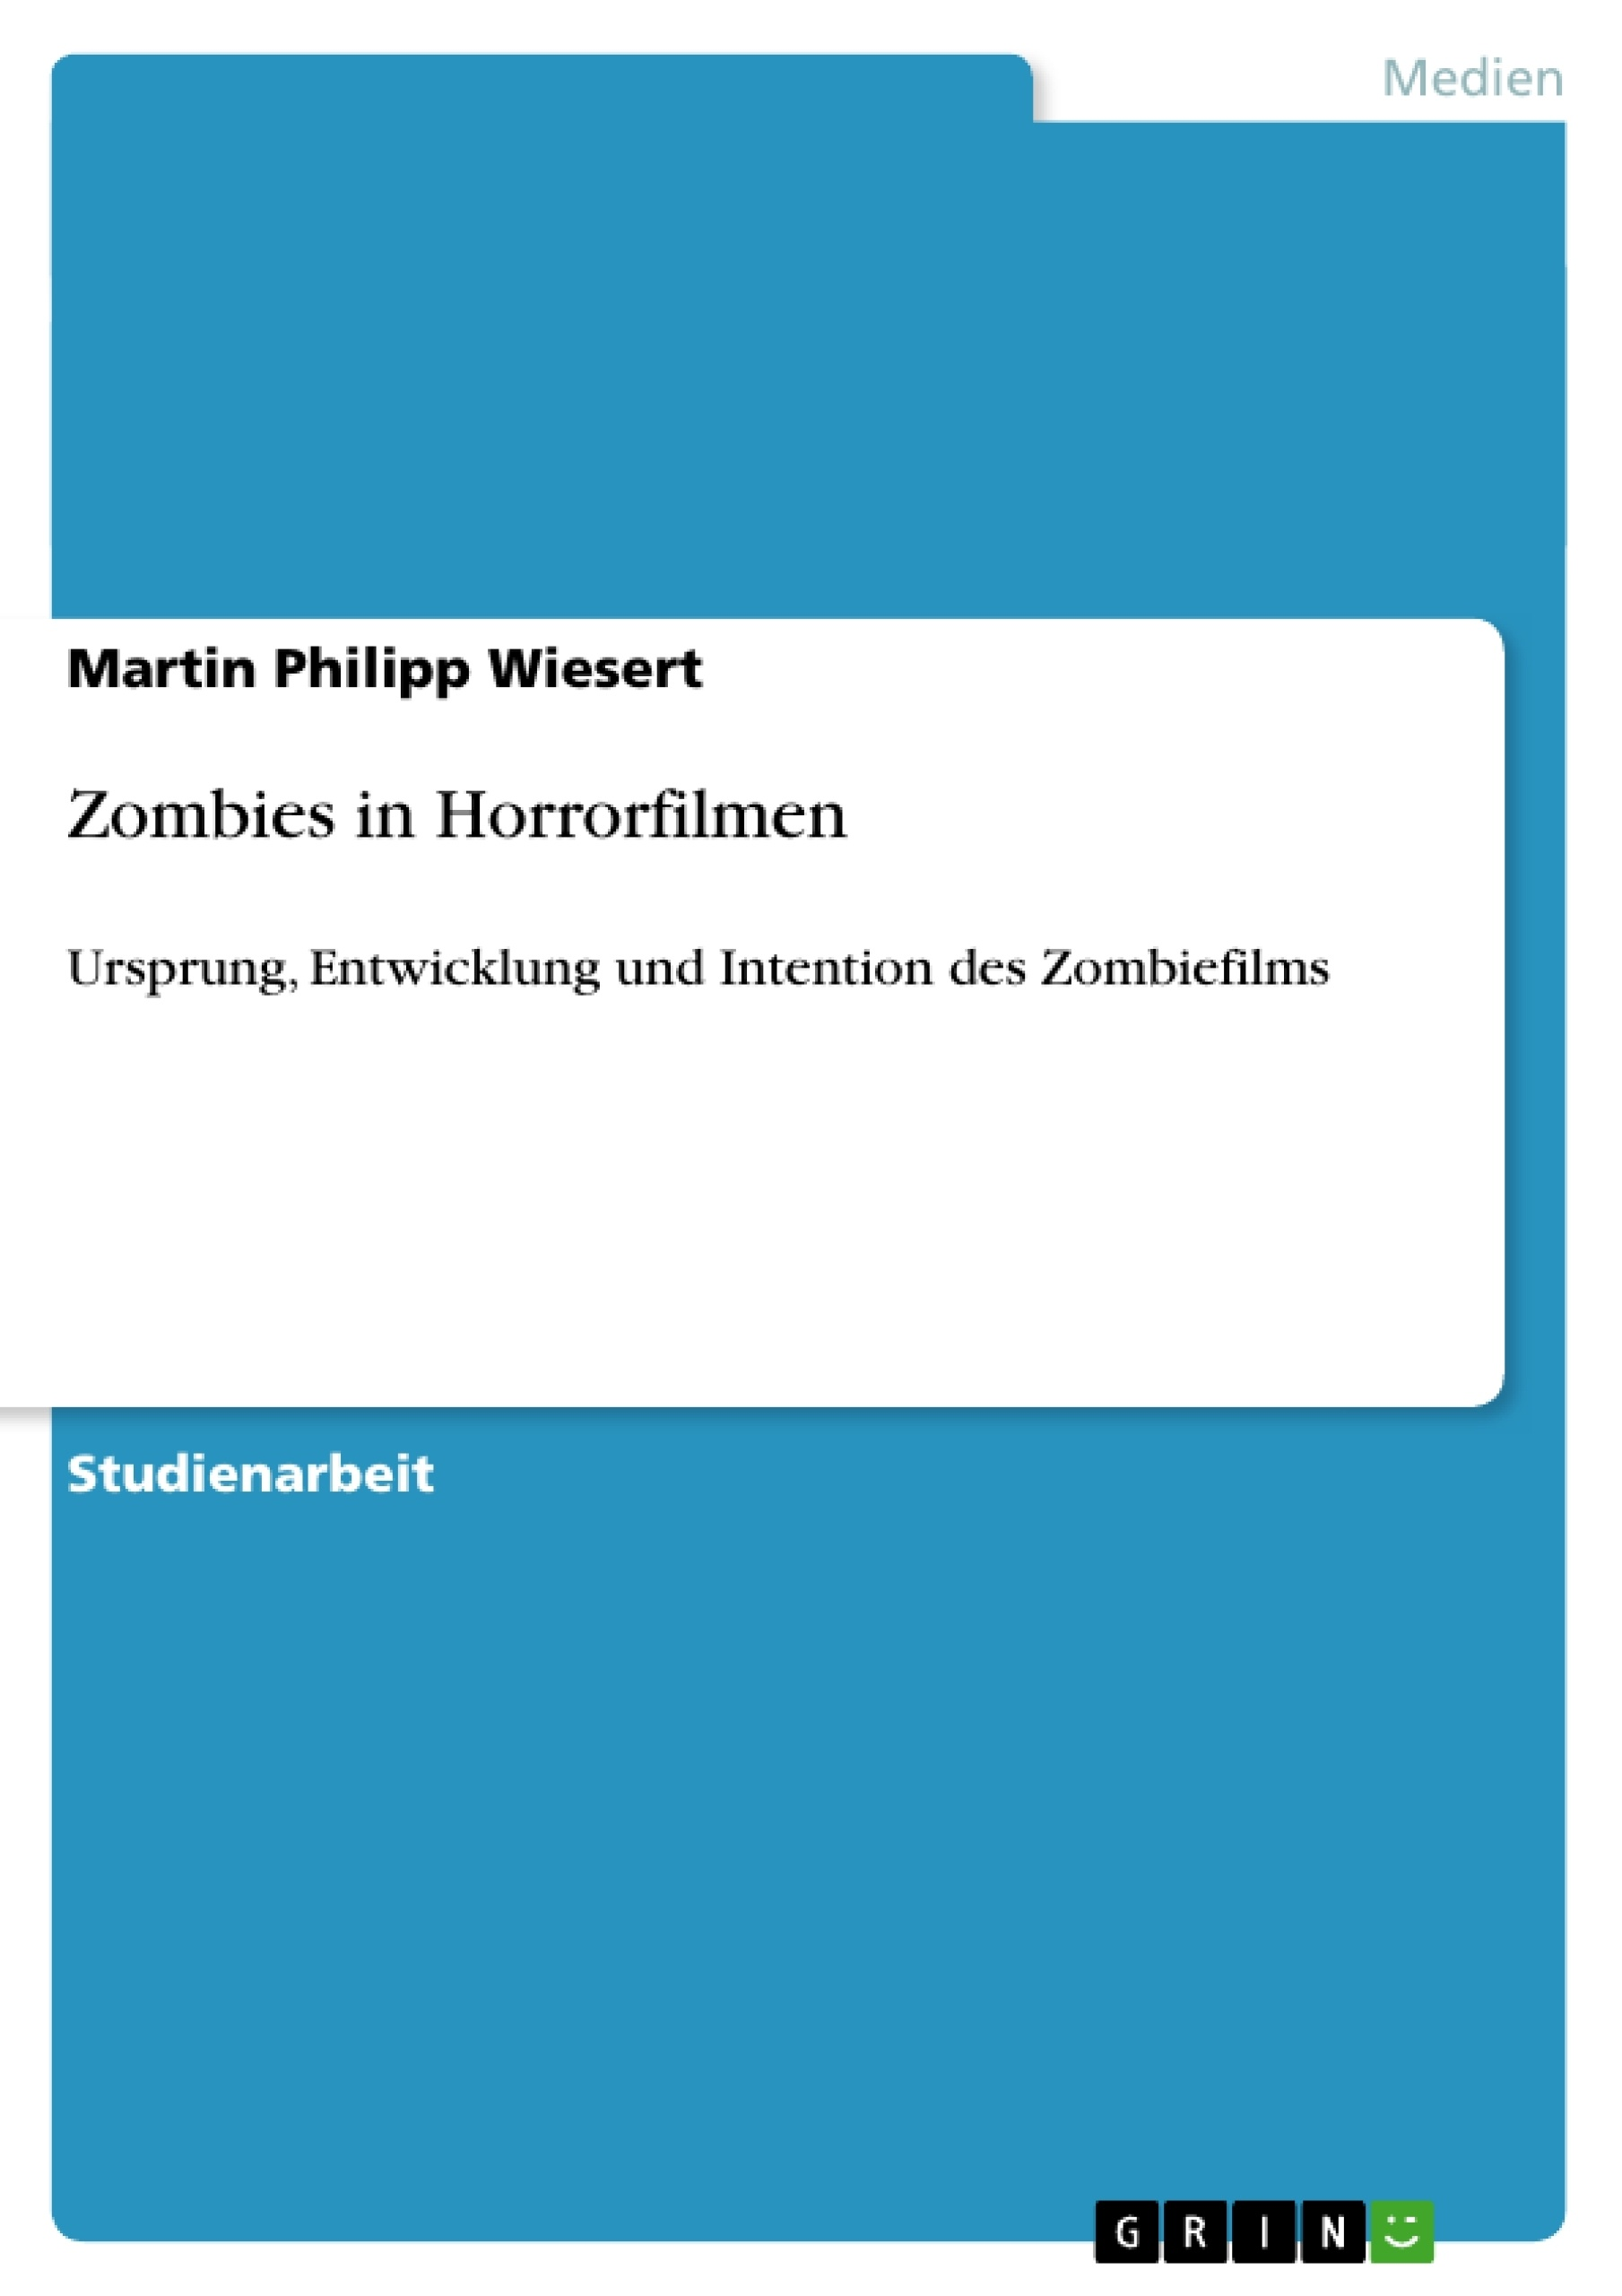 Titel: Zombies in Horrorfilmen